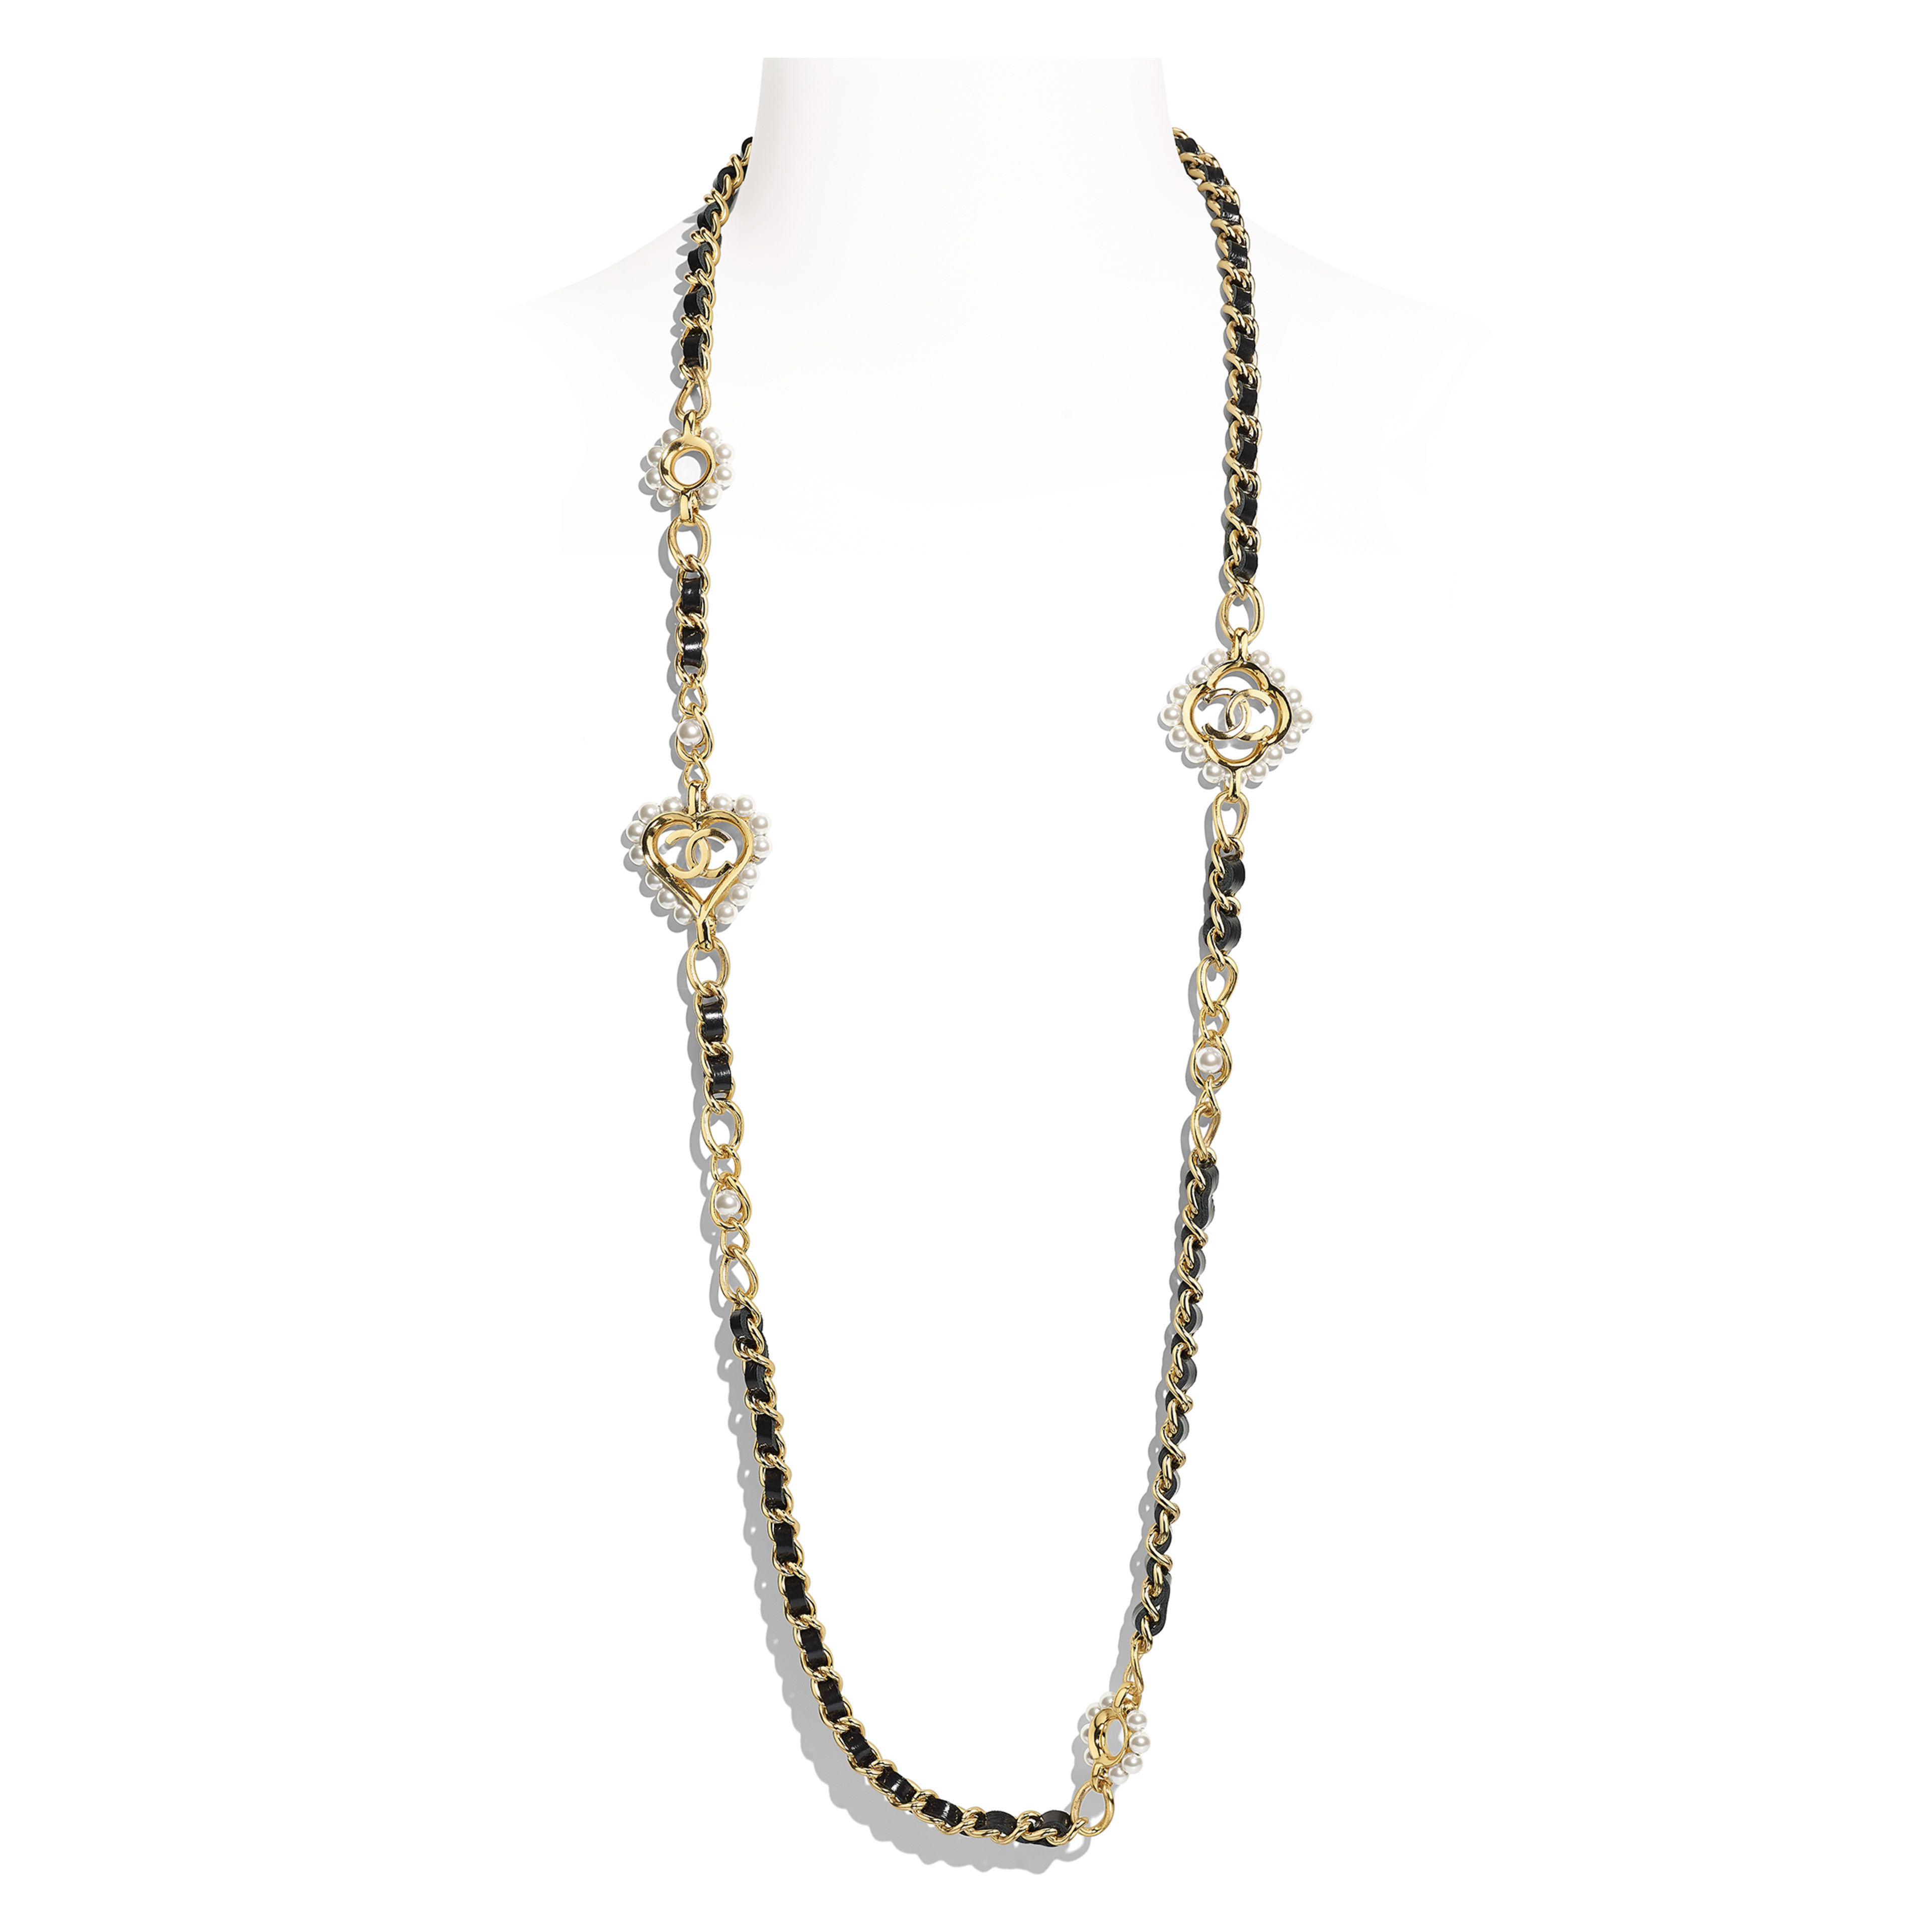 Long Necklace - Gold, Black & Pearly White - Metal, Calfskin & Glass Pearls - Default view - see full sized version